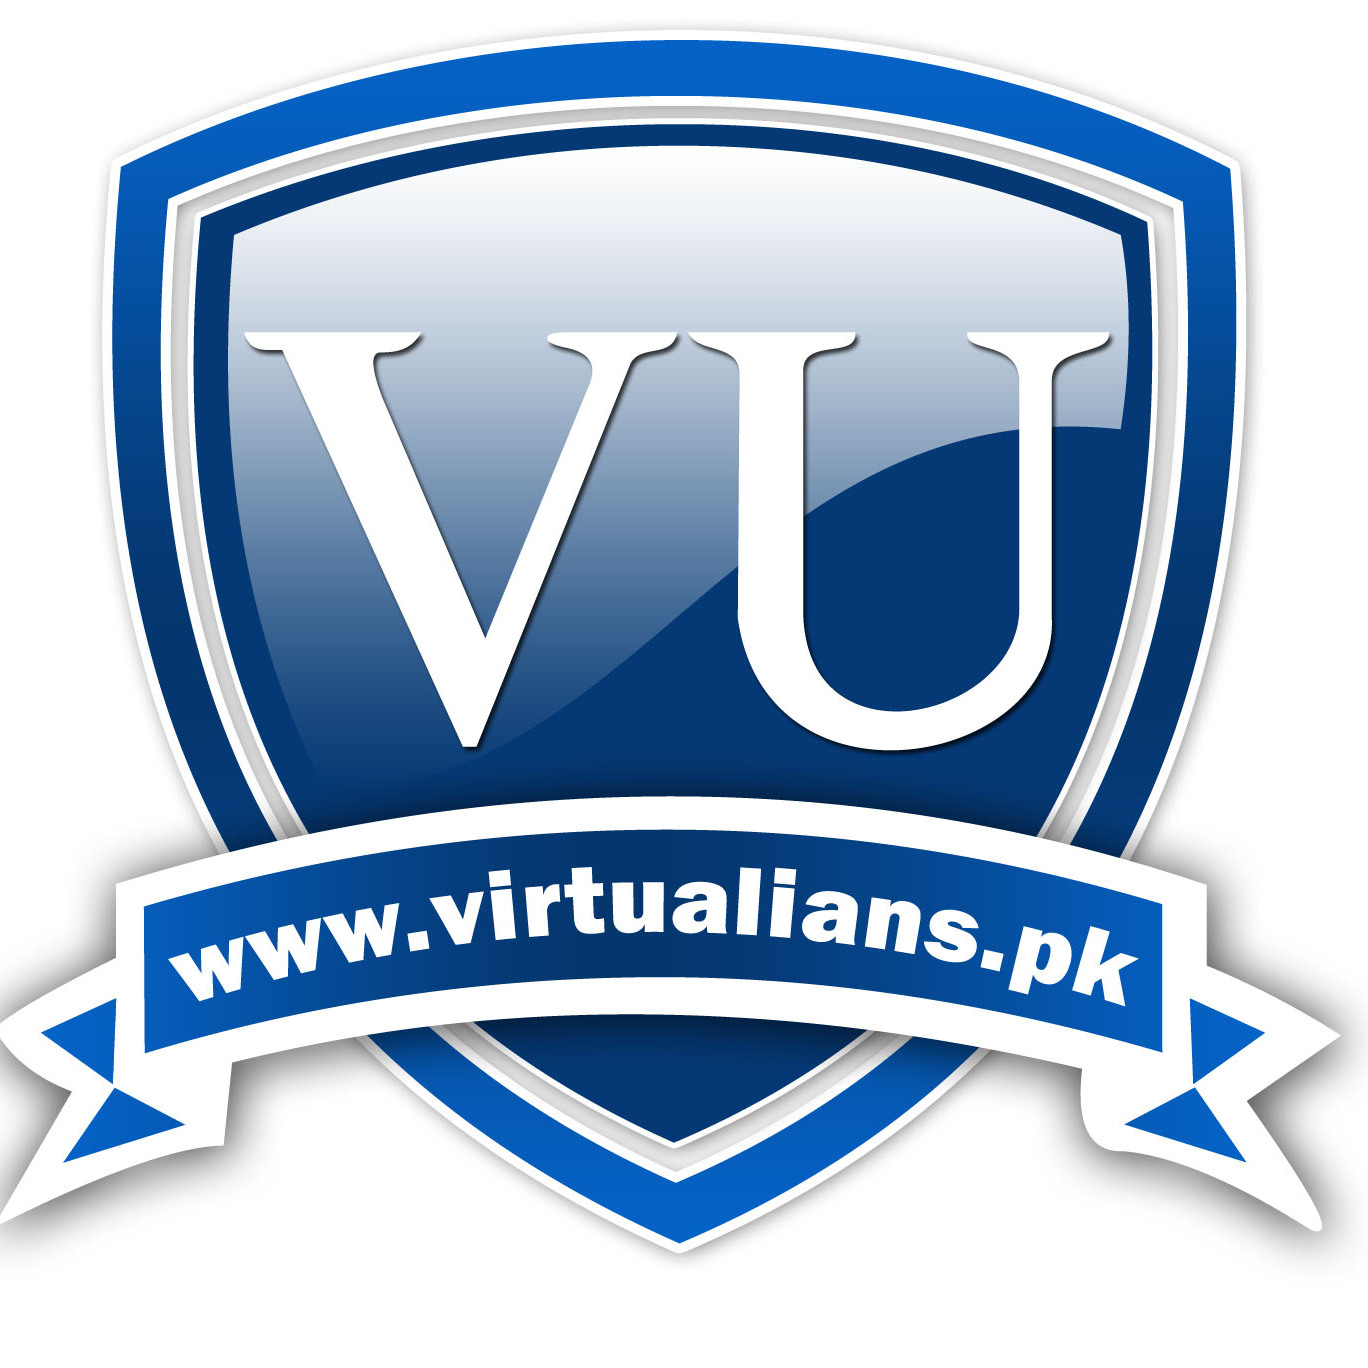 The Rector of Virtual University of Pakistan (VUP) Has died Today, (إِنَّا لِلّهِ وَإِنَّـا إِلَيْهِ رَاجِعونَ)